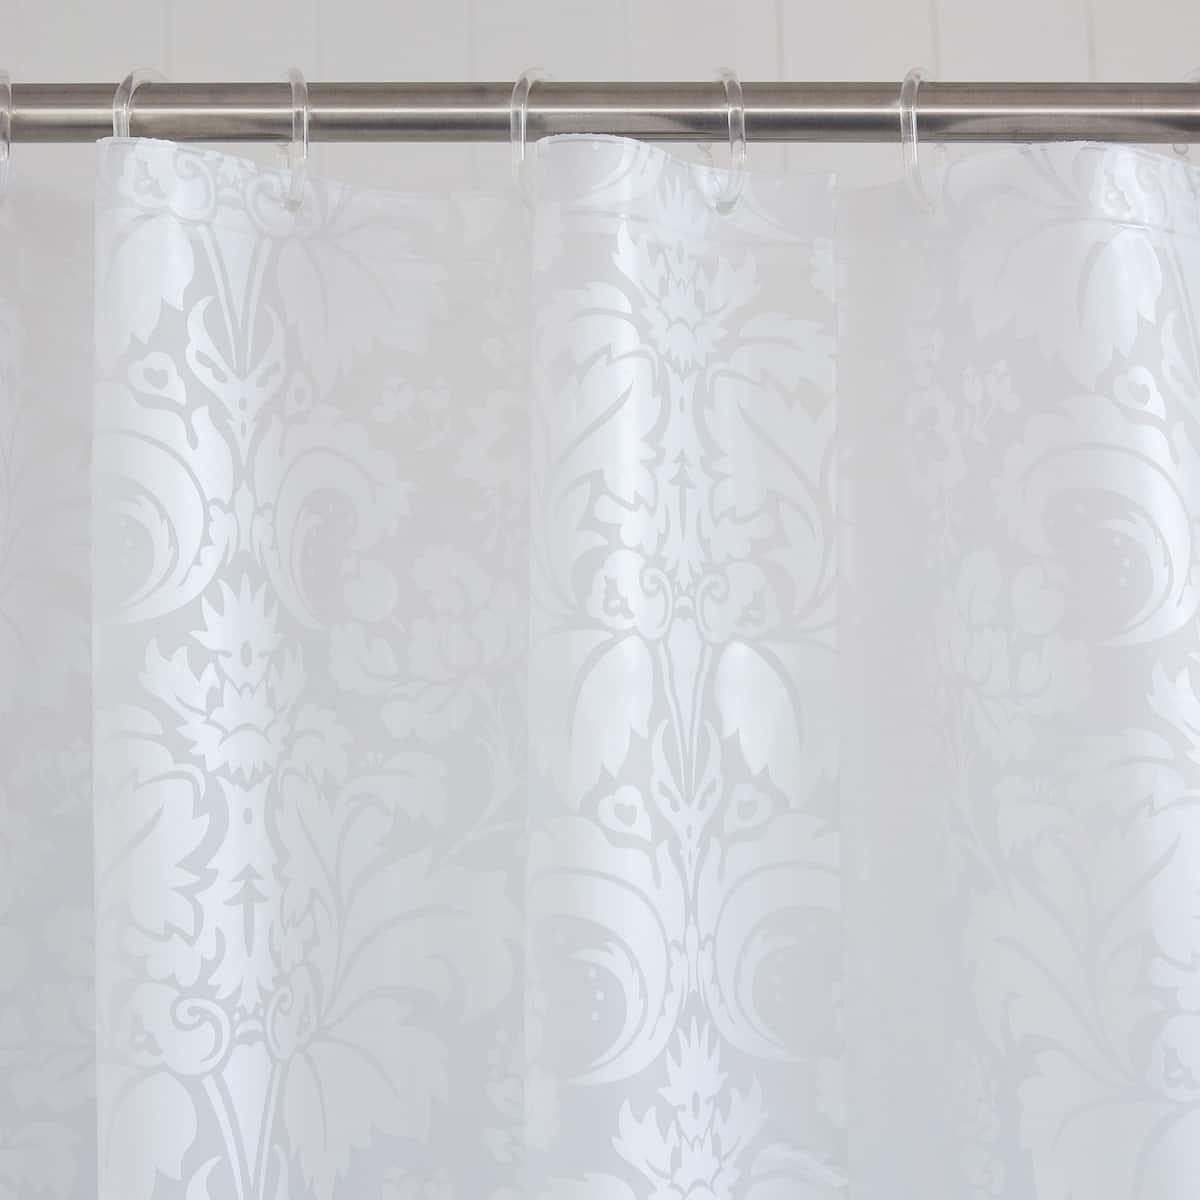 Image 2 Of The Product Large Damask Shower Curtain